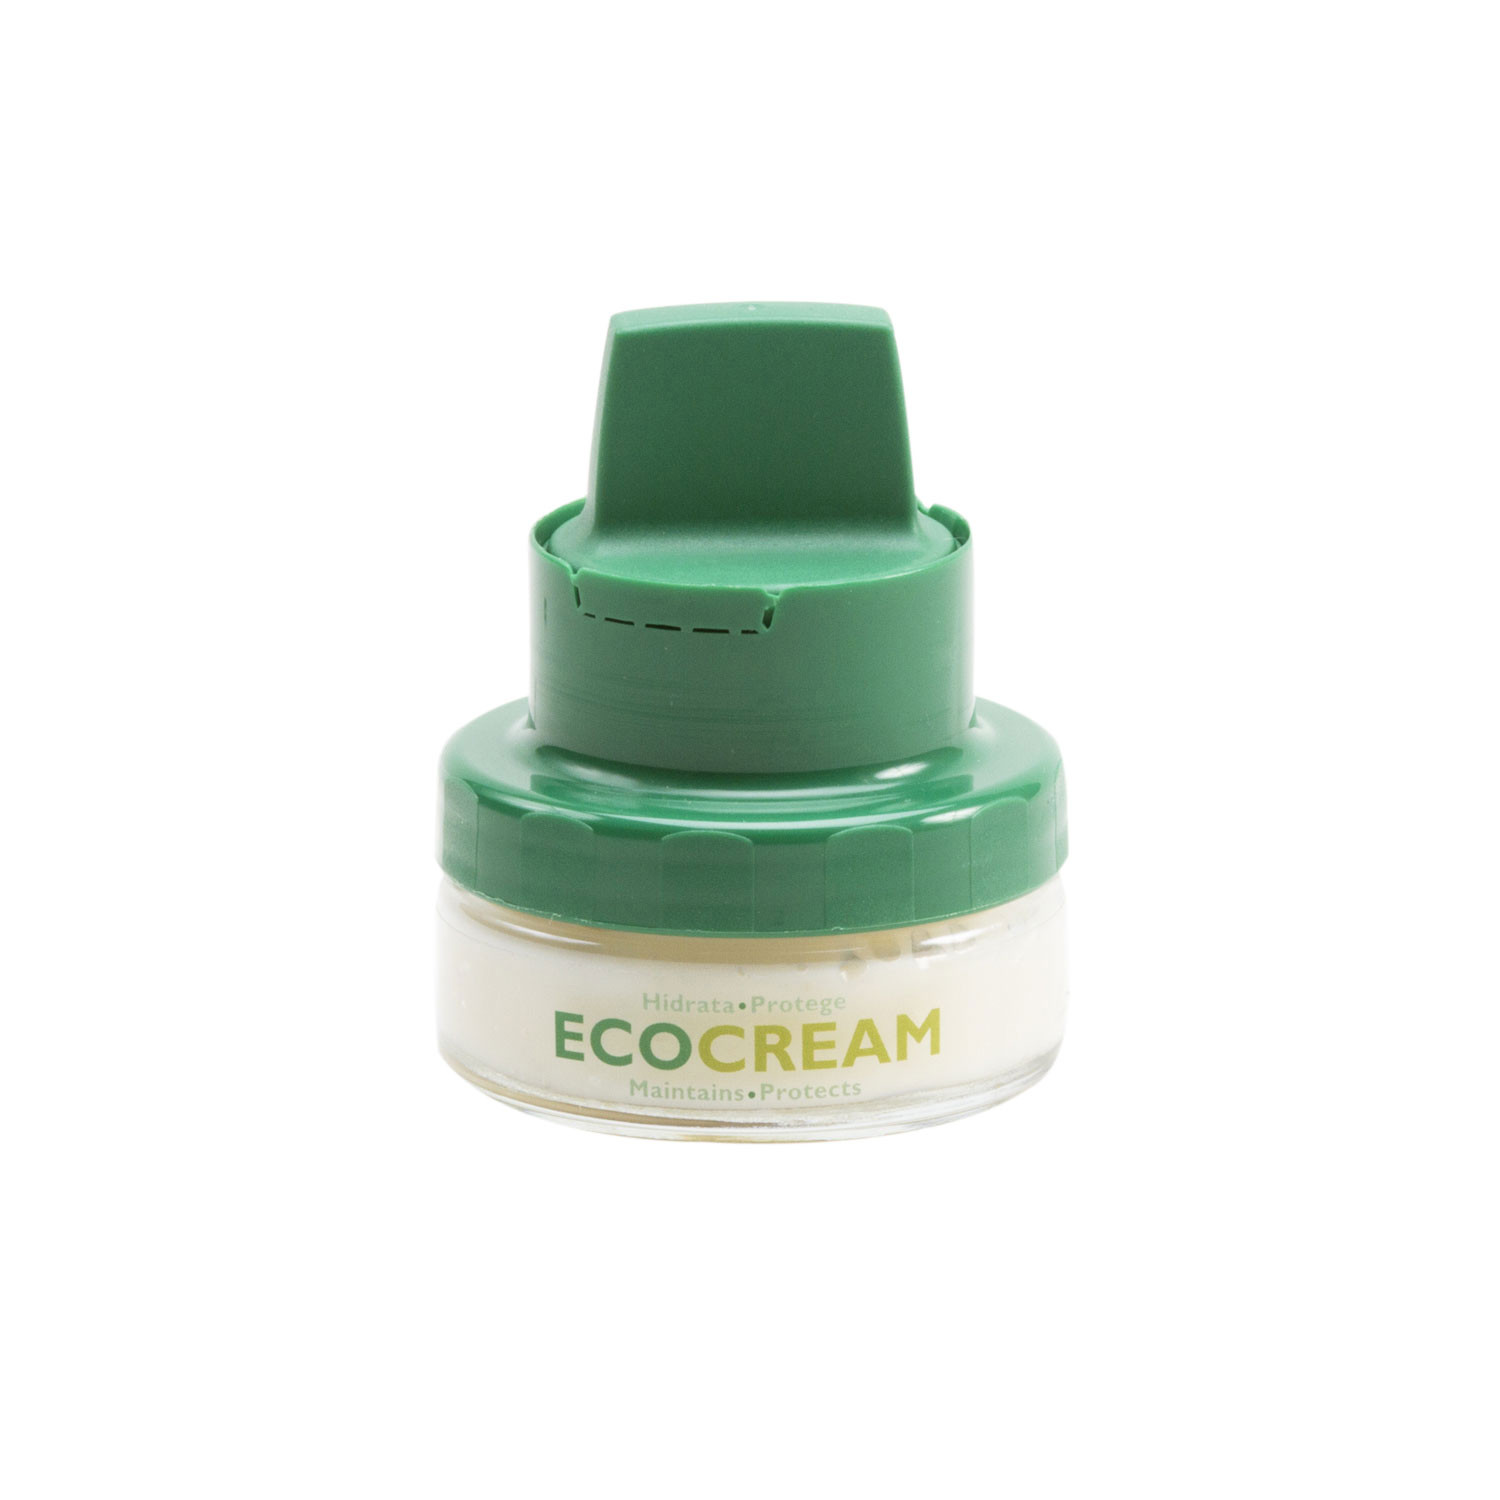 Eco Cream, farblos